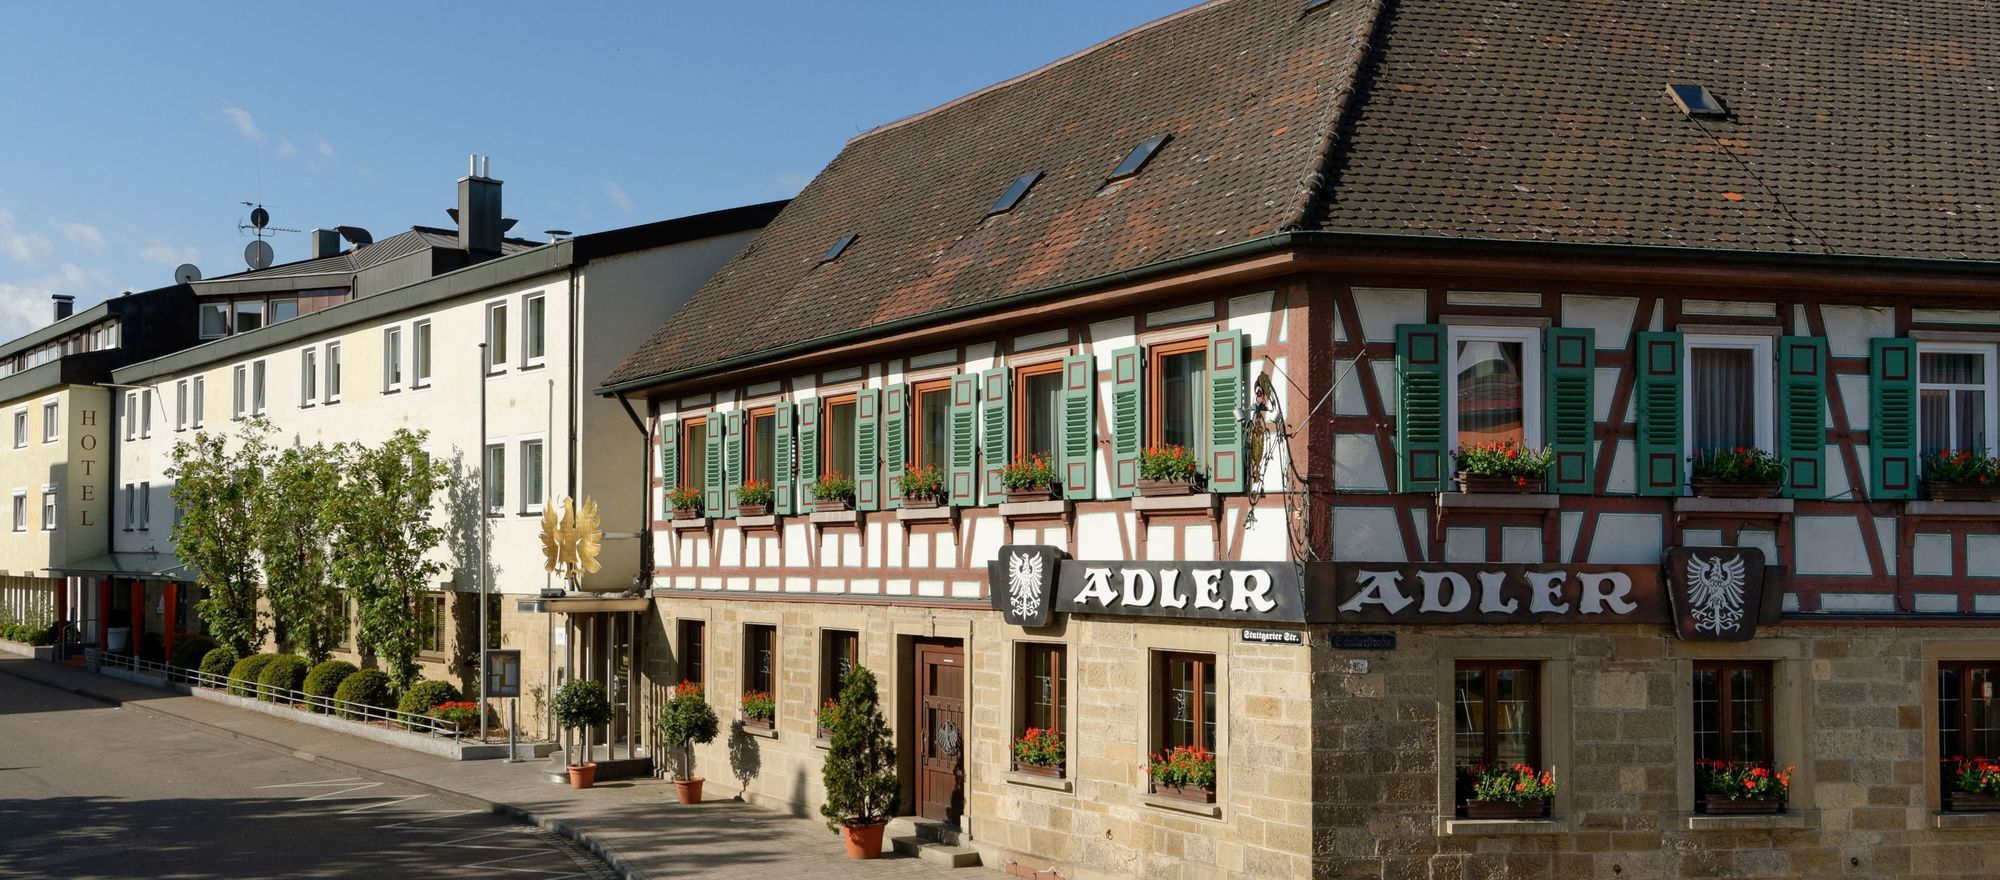 Exterior view of the Ringhotel Adler in Asperg/Ludwigsburg, 4-stars-superior hotel in the metropolitan region Stuttgart